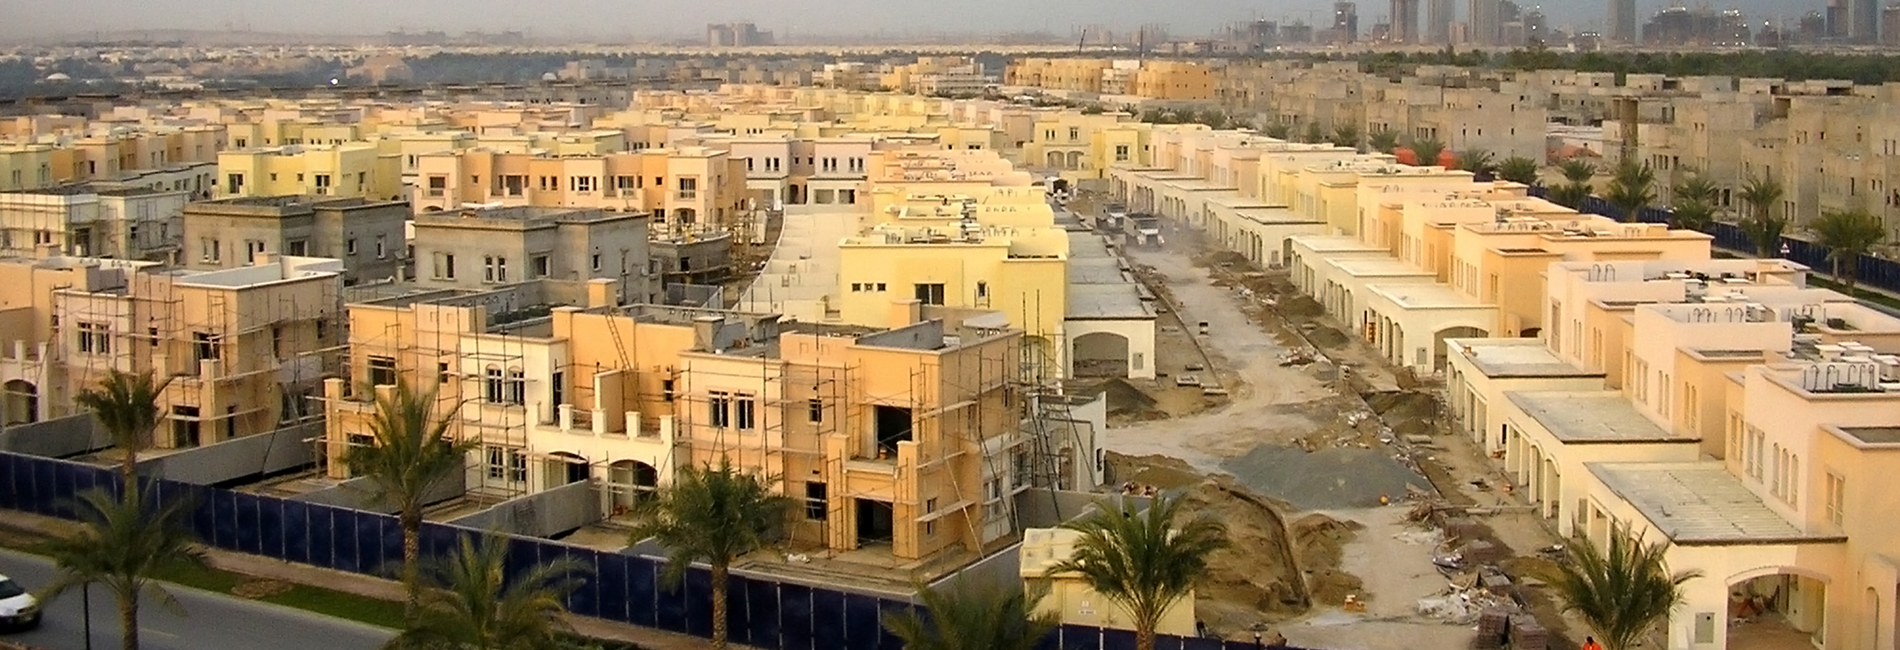 <strong>Trust at Work since 1974 </strong><br/><br/><span>The Lakes Maeen Neighbourhood - Dubai</span>